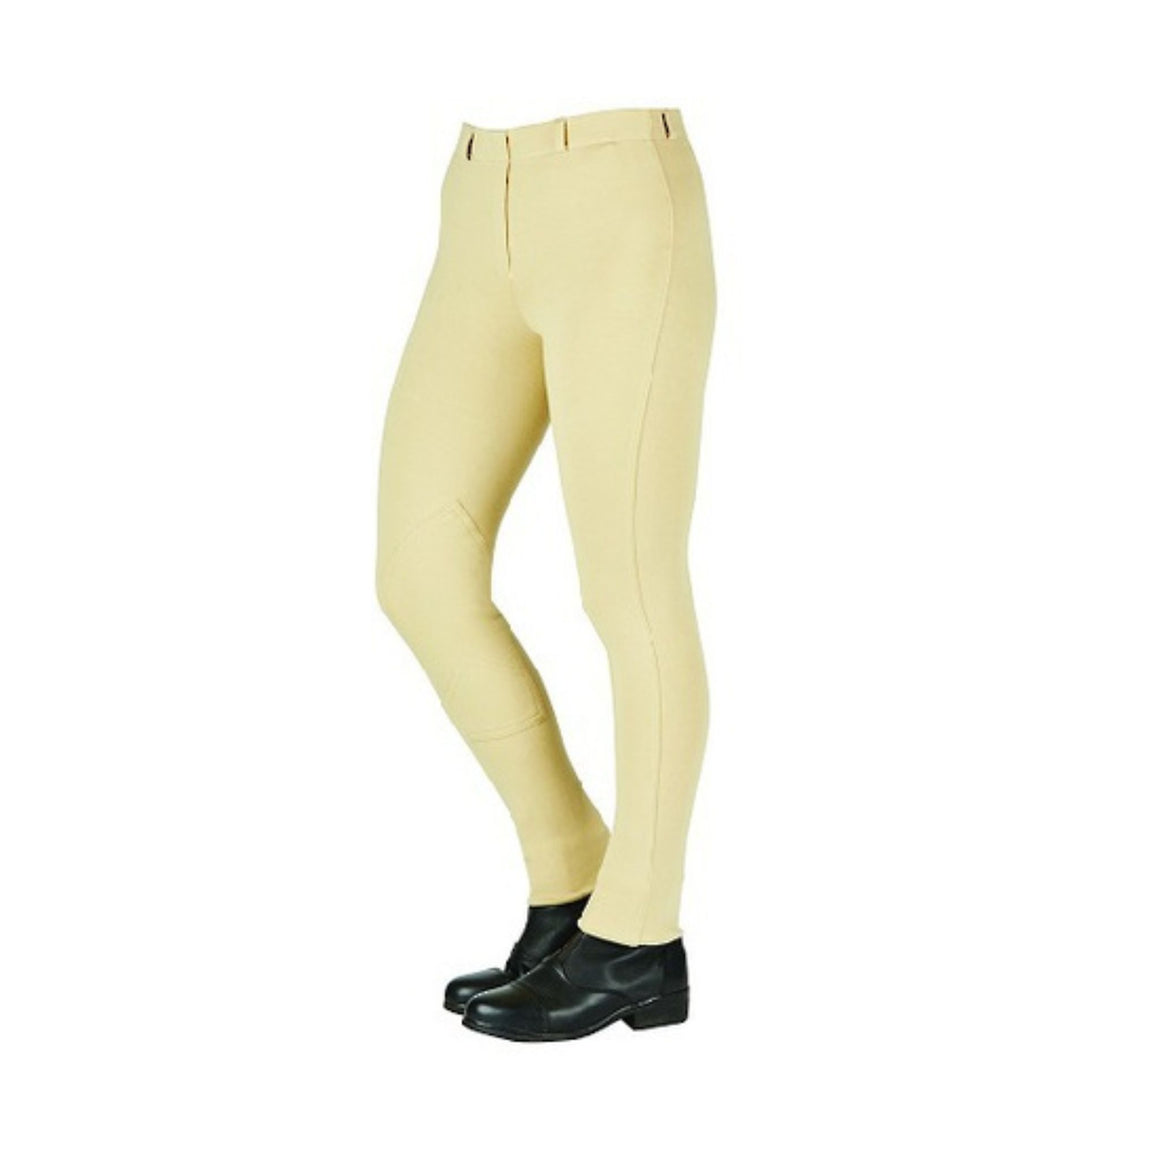 KIDS Saxon Cotton Jodhpurs